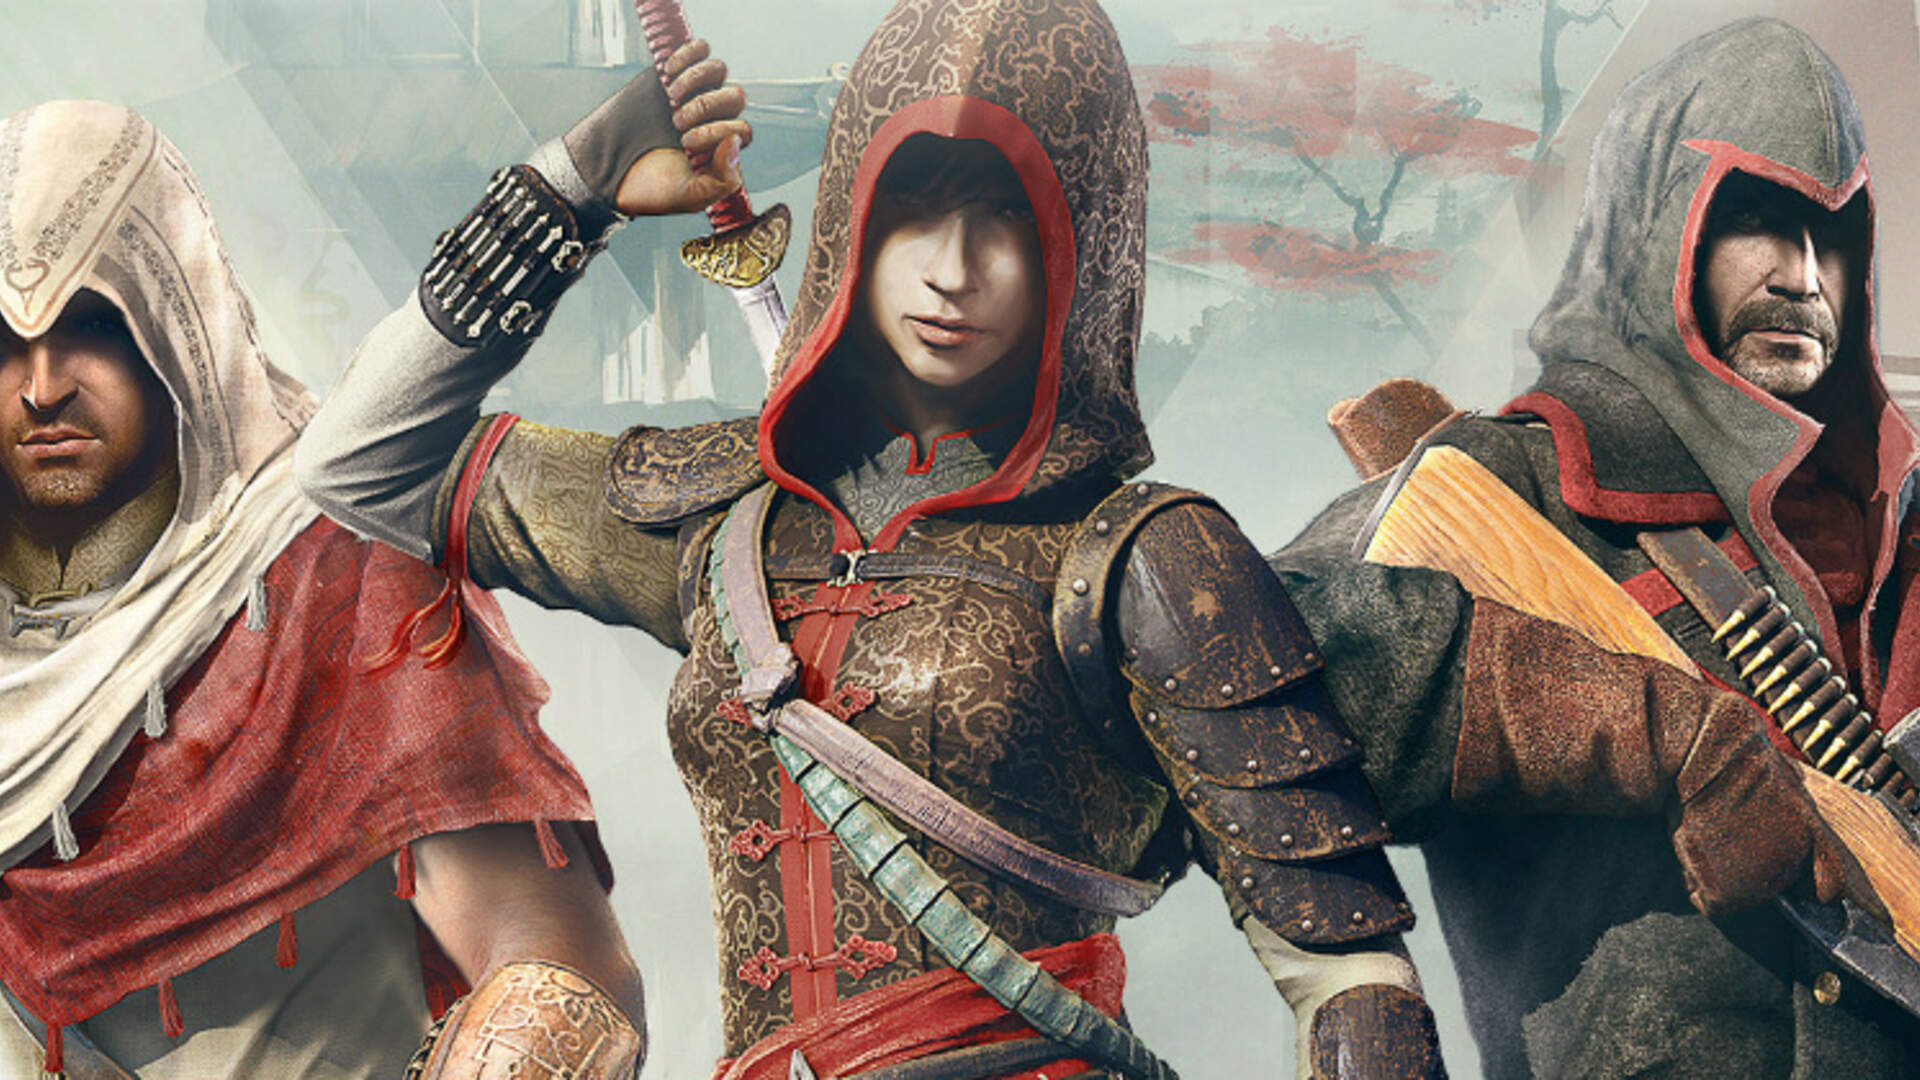 Where Assassin's Creed Chronicles Should Go After Its Trilogy